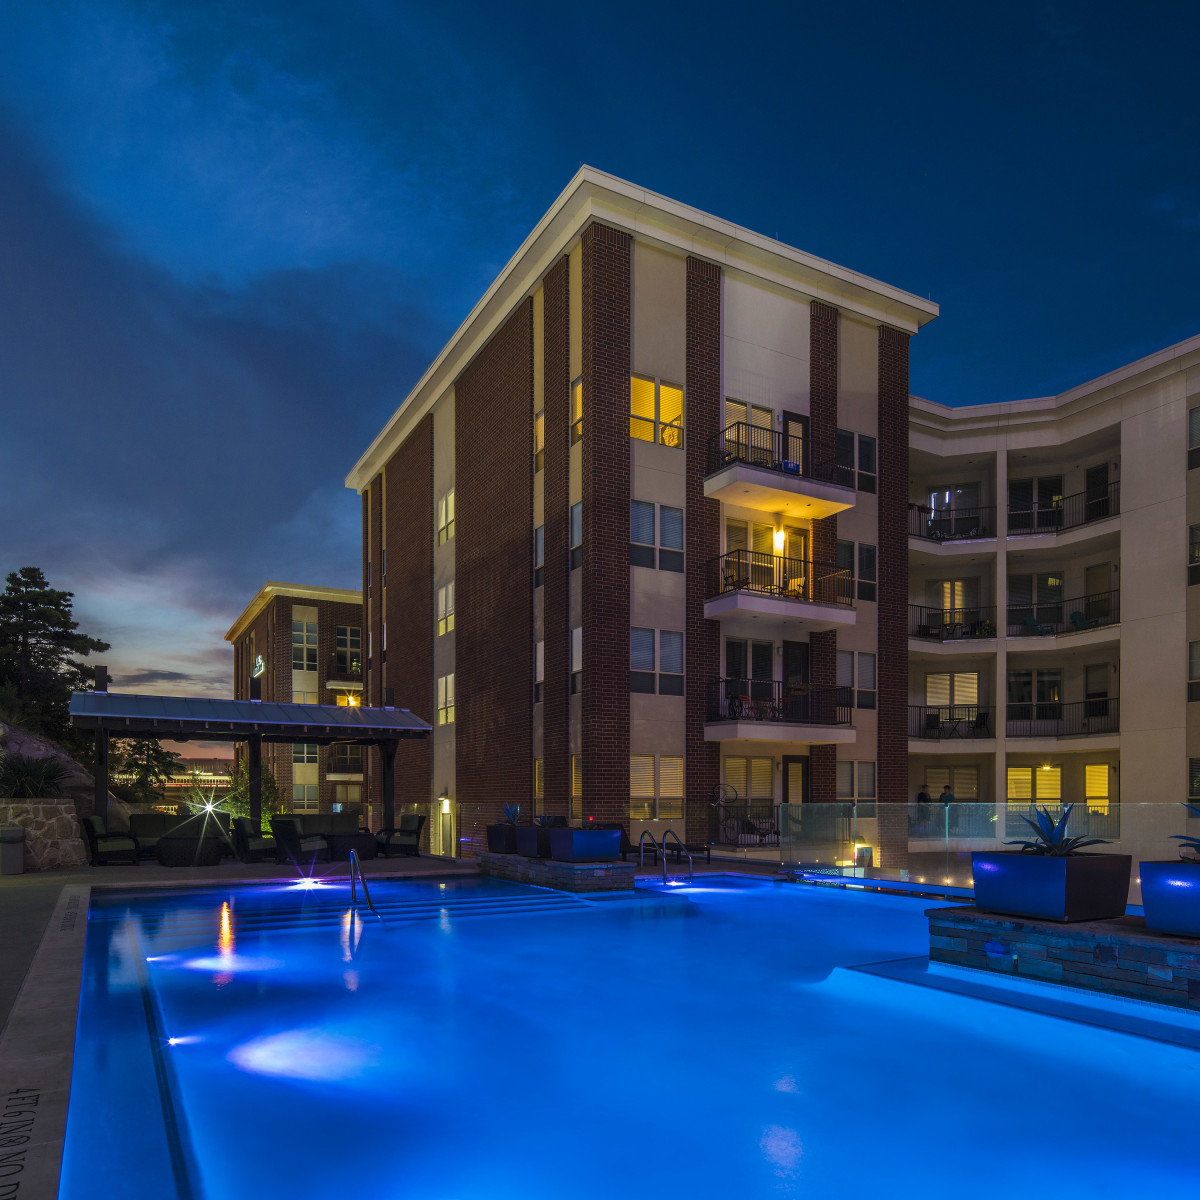 The Alexan apartments in Dallas